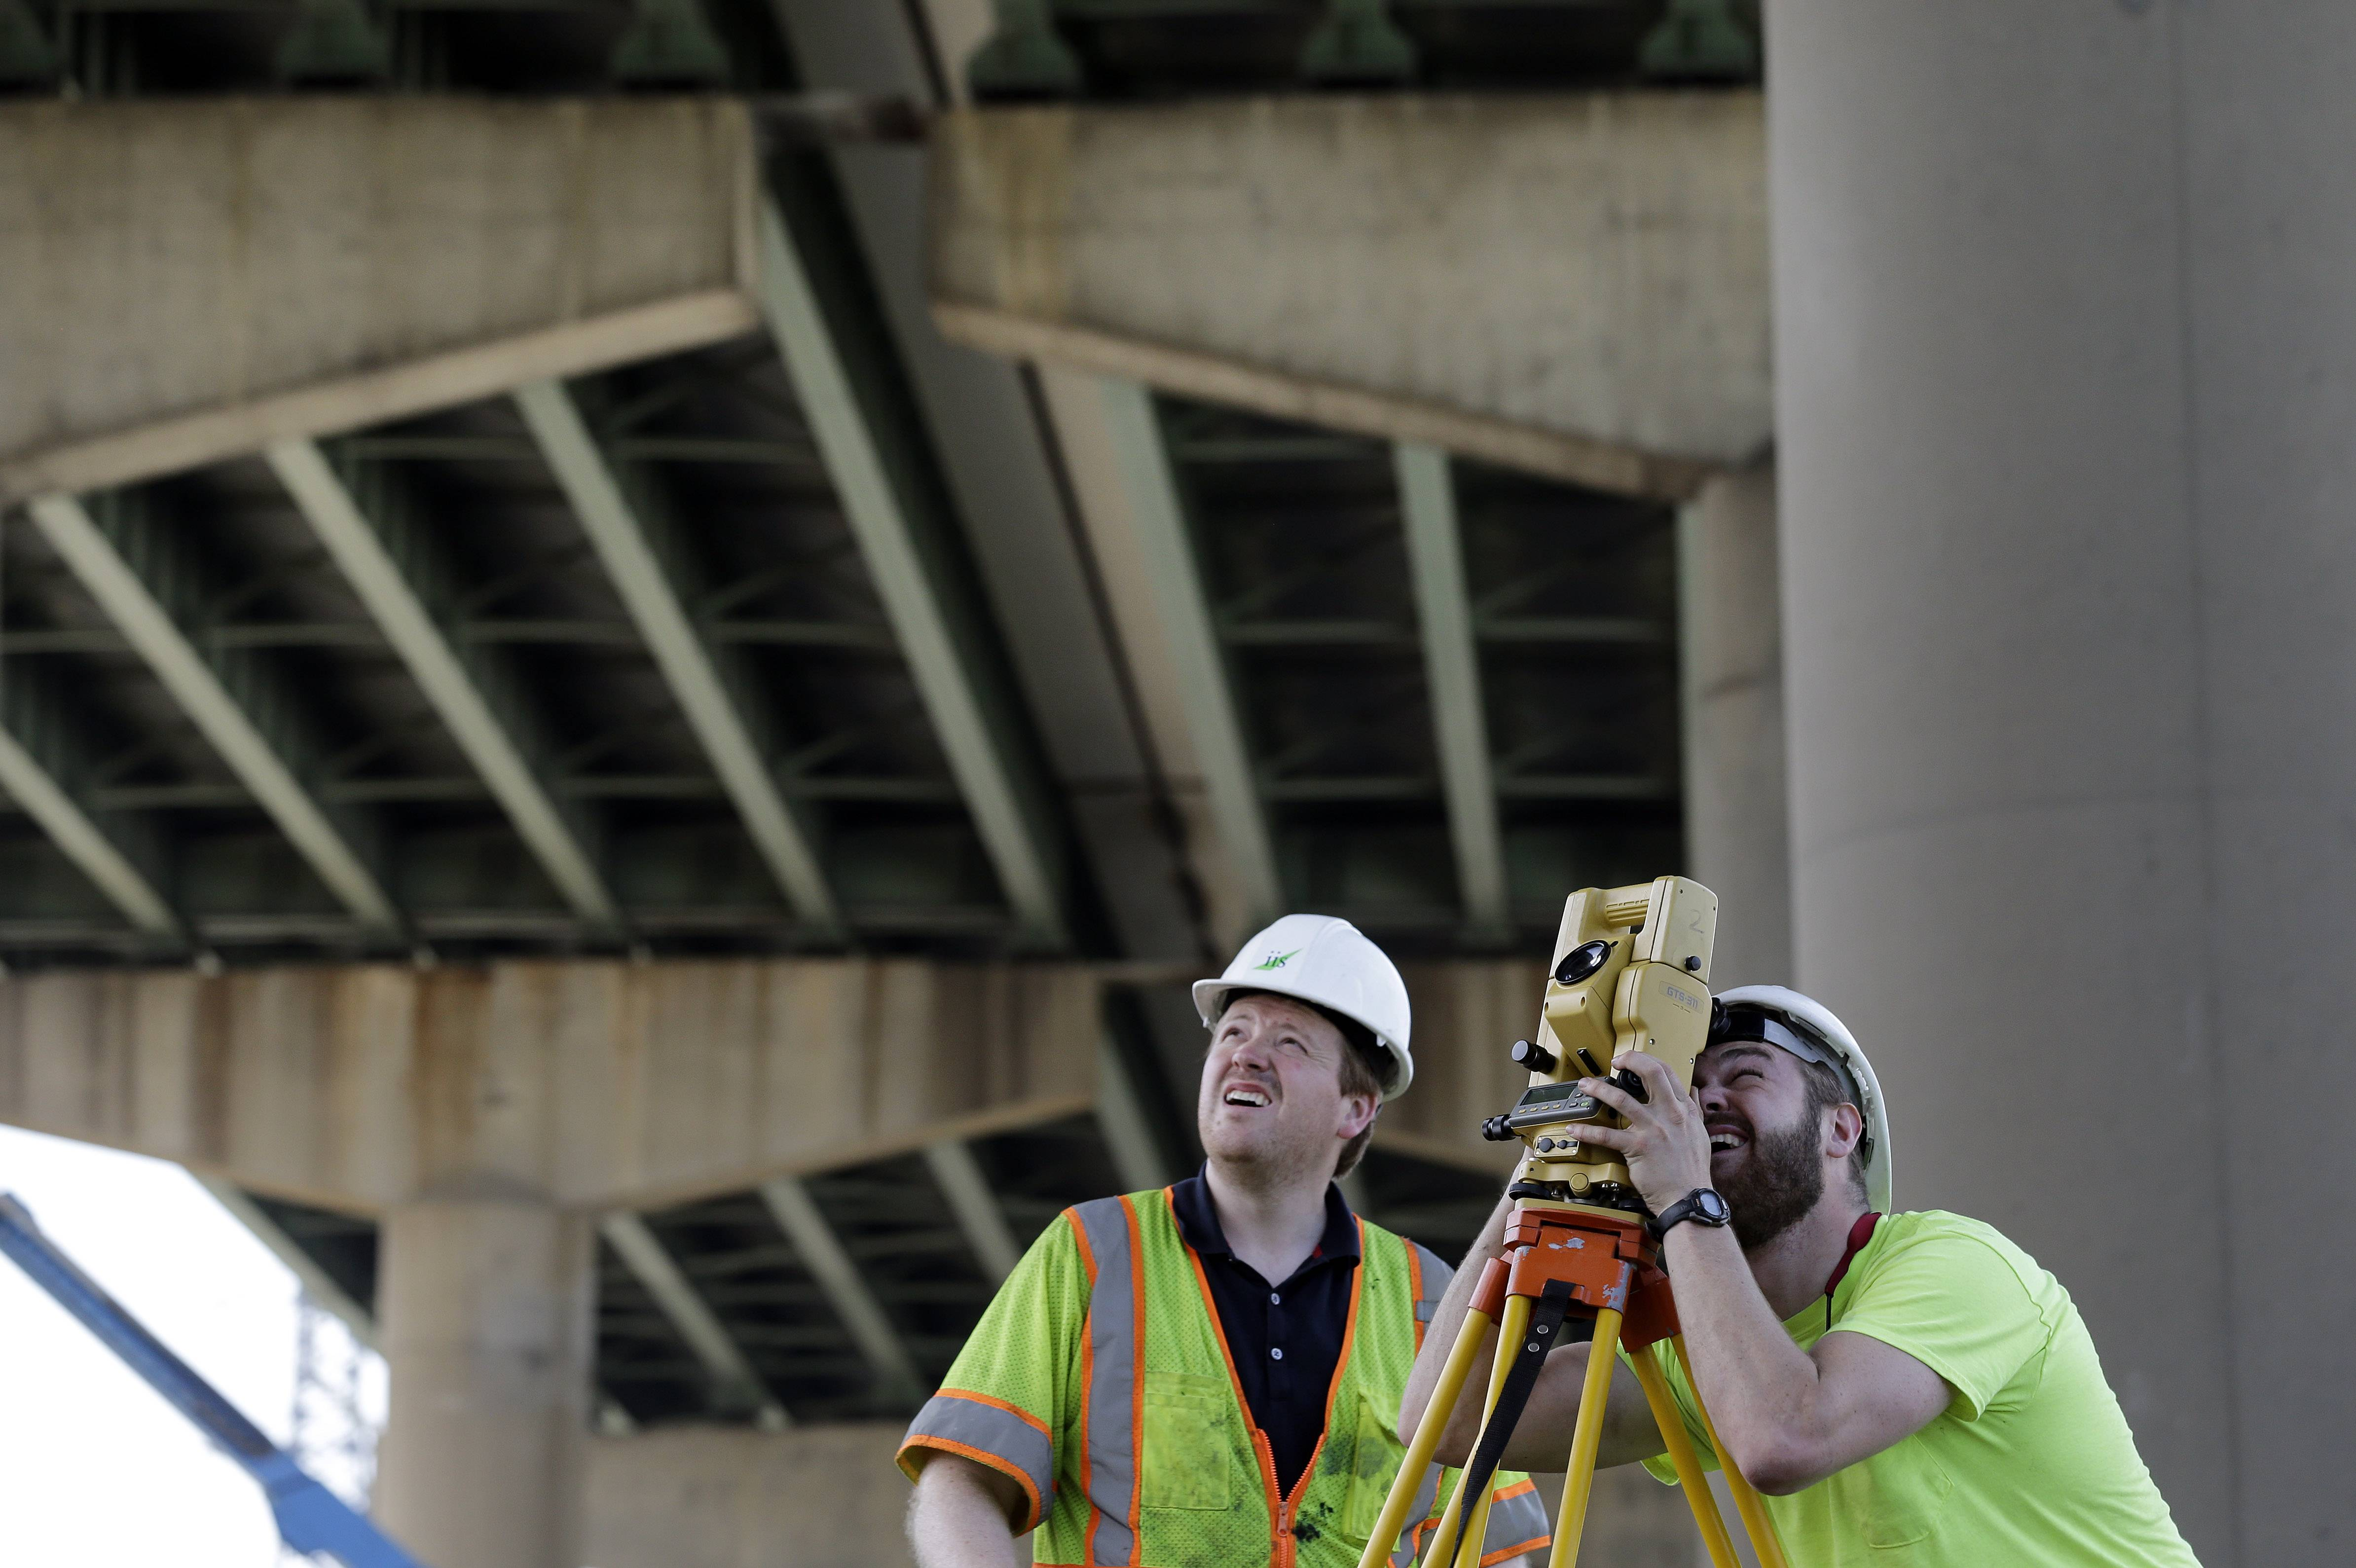 Surveyors work below the Interstate 495 bridge over the Christina River near Wilmington, Del., Tuesday, June 3, 2014, after it was closed due to the discovery of four tilting support columns.